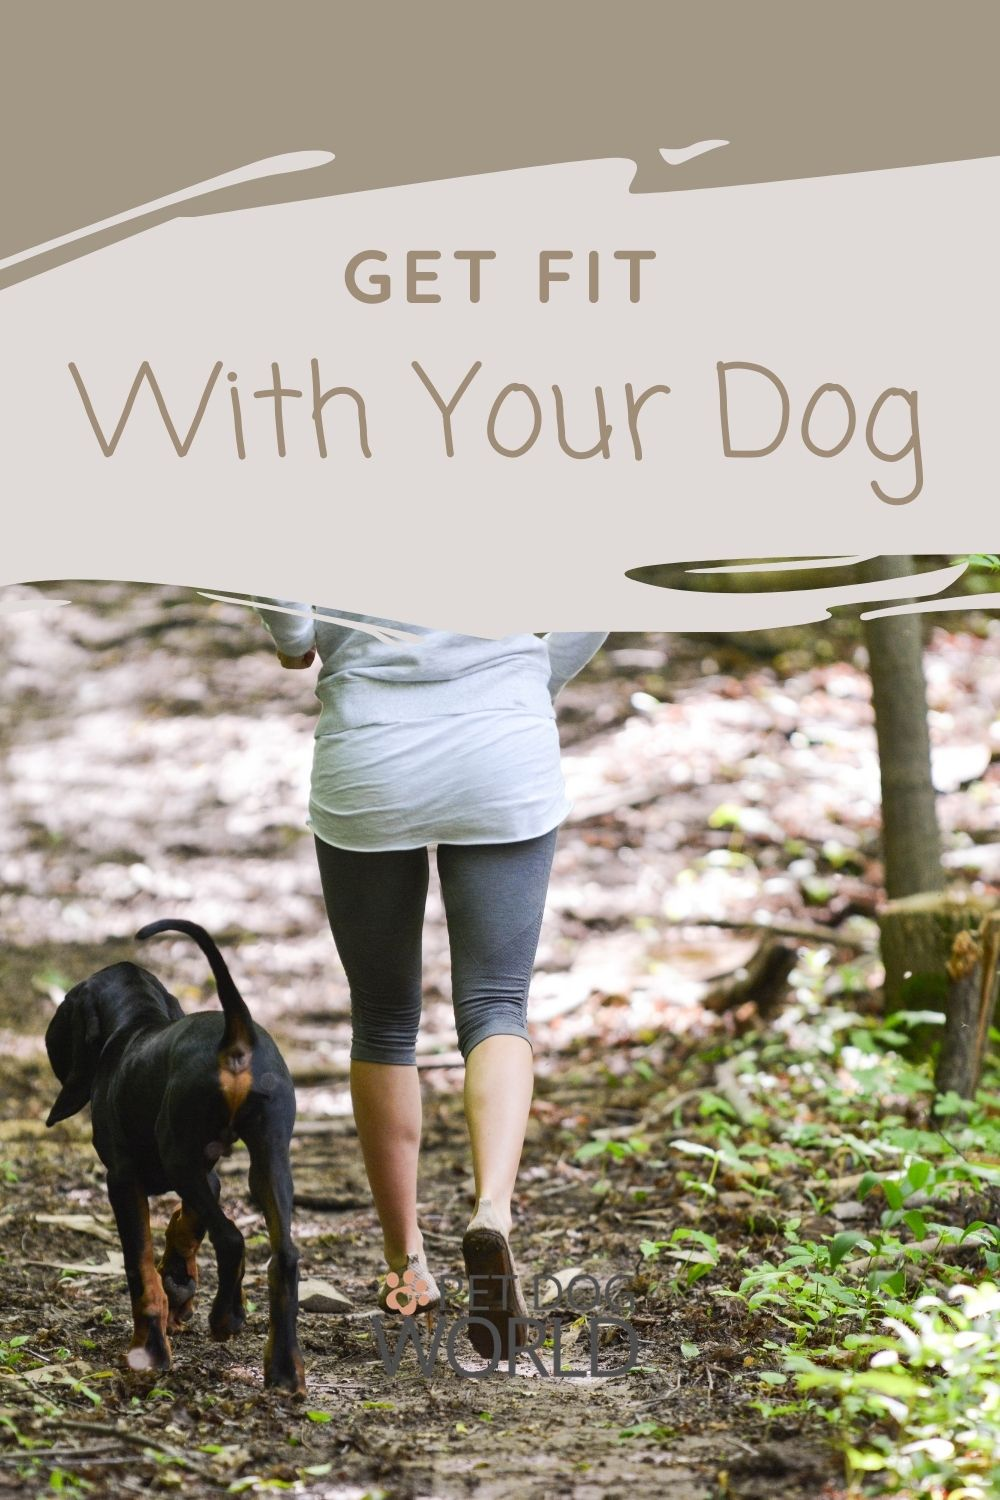 How to get fit with your dog, follow these tips.